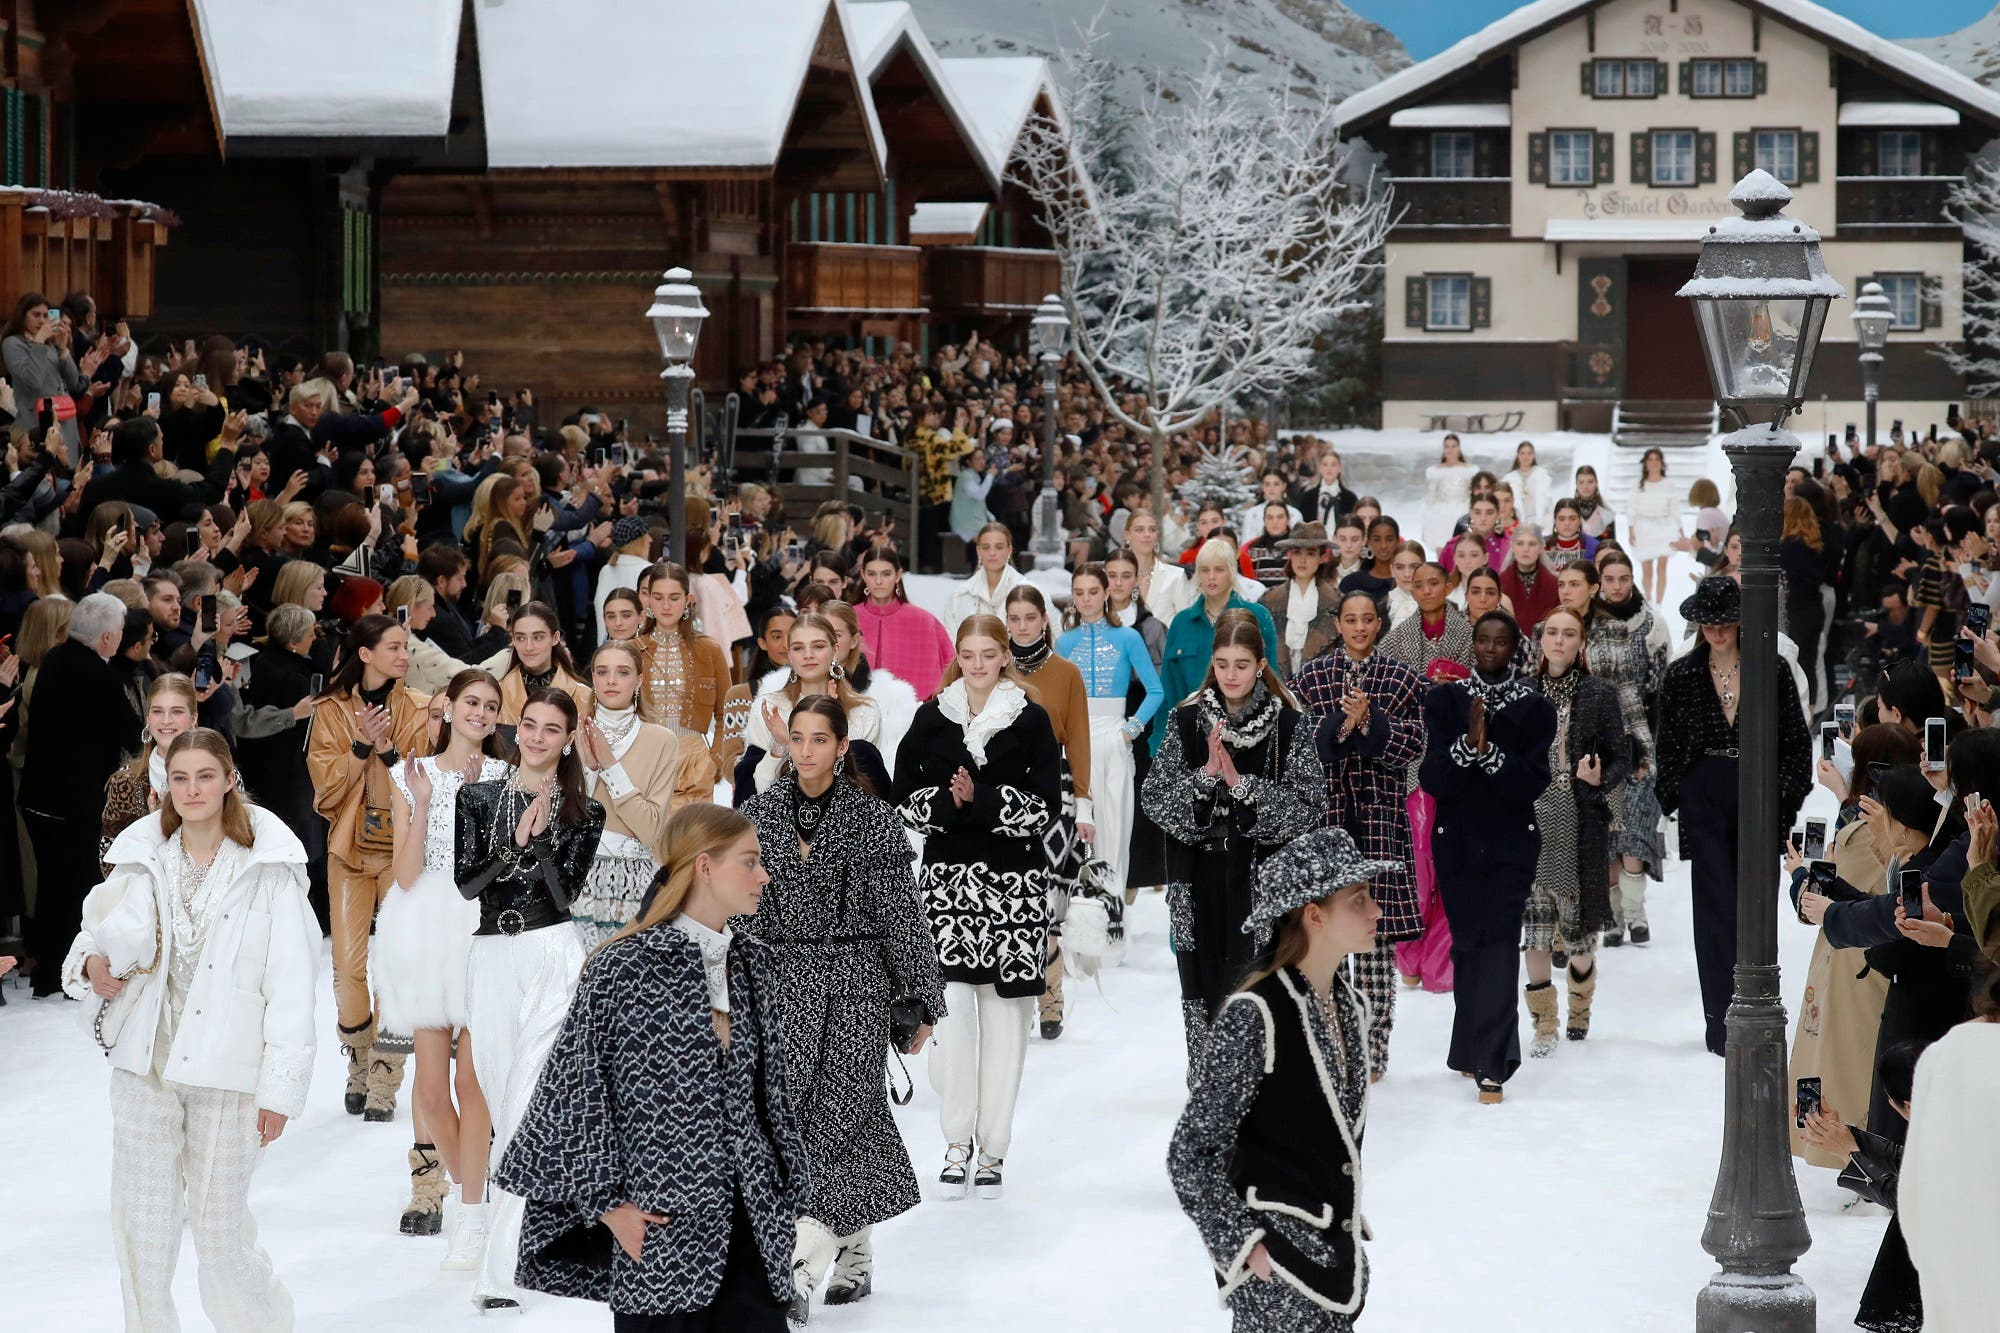 Models applaud in tribute to Chanel's late German fashion designer, Karl Lagerfeld, at the end of the Chanel Women's fashion show at the Grand Palais, turned into a wintry village in Paris, on March 5, 2019. (AFP)